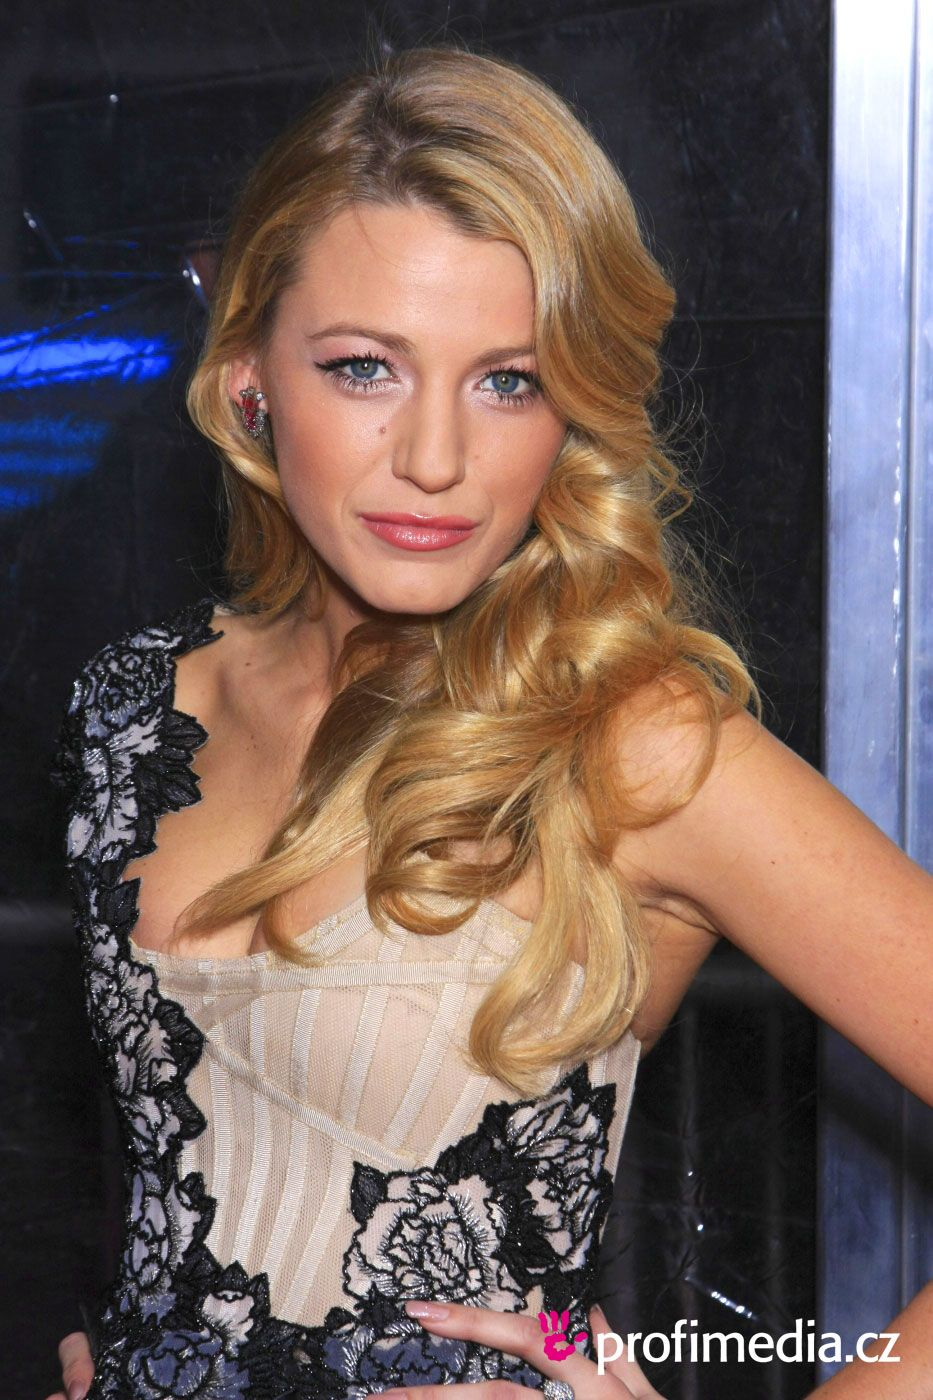 blake lively hairstyles   Prom hairstyle - Blake Lively - Blake Lively